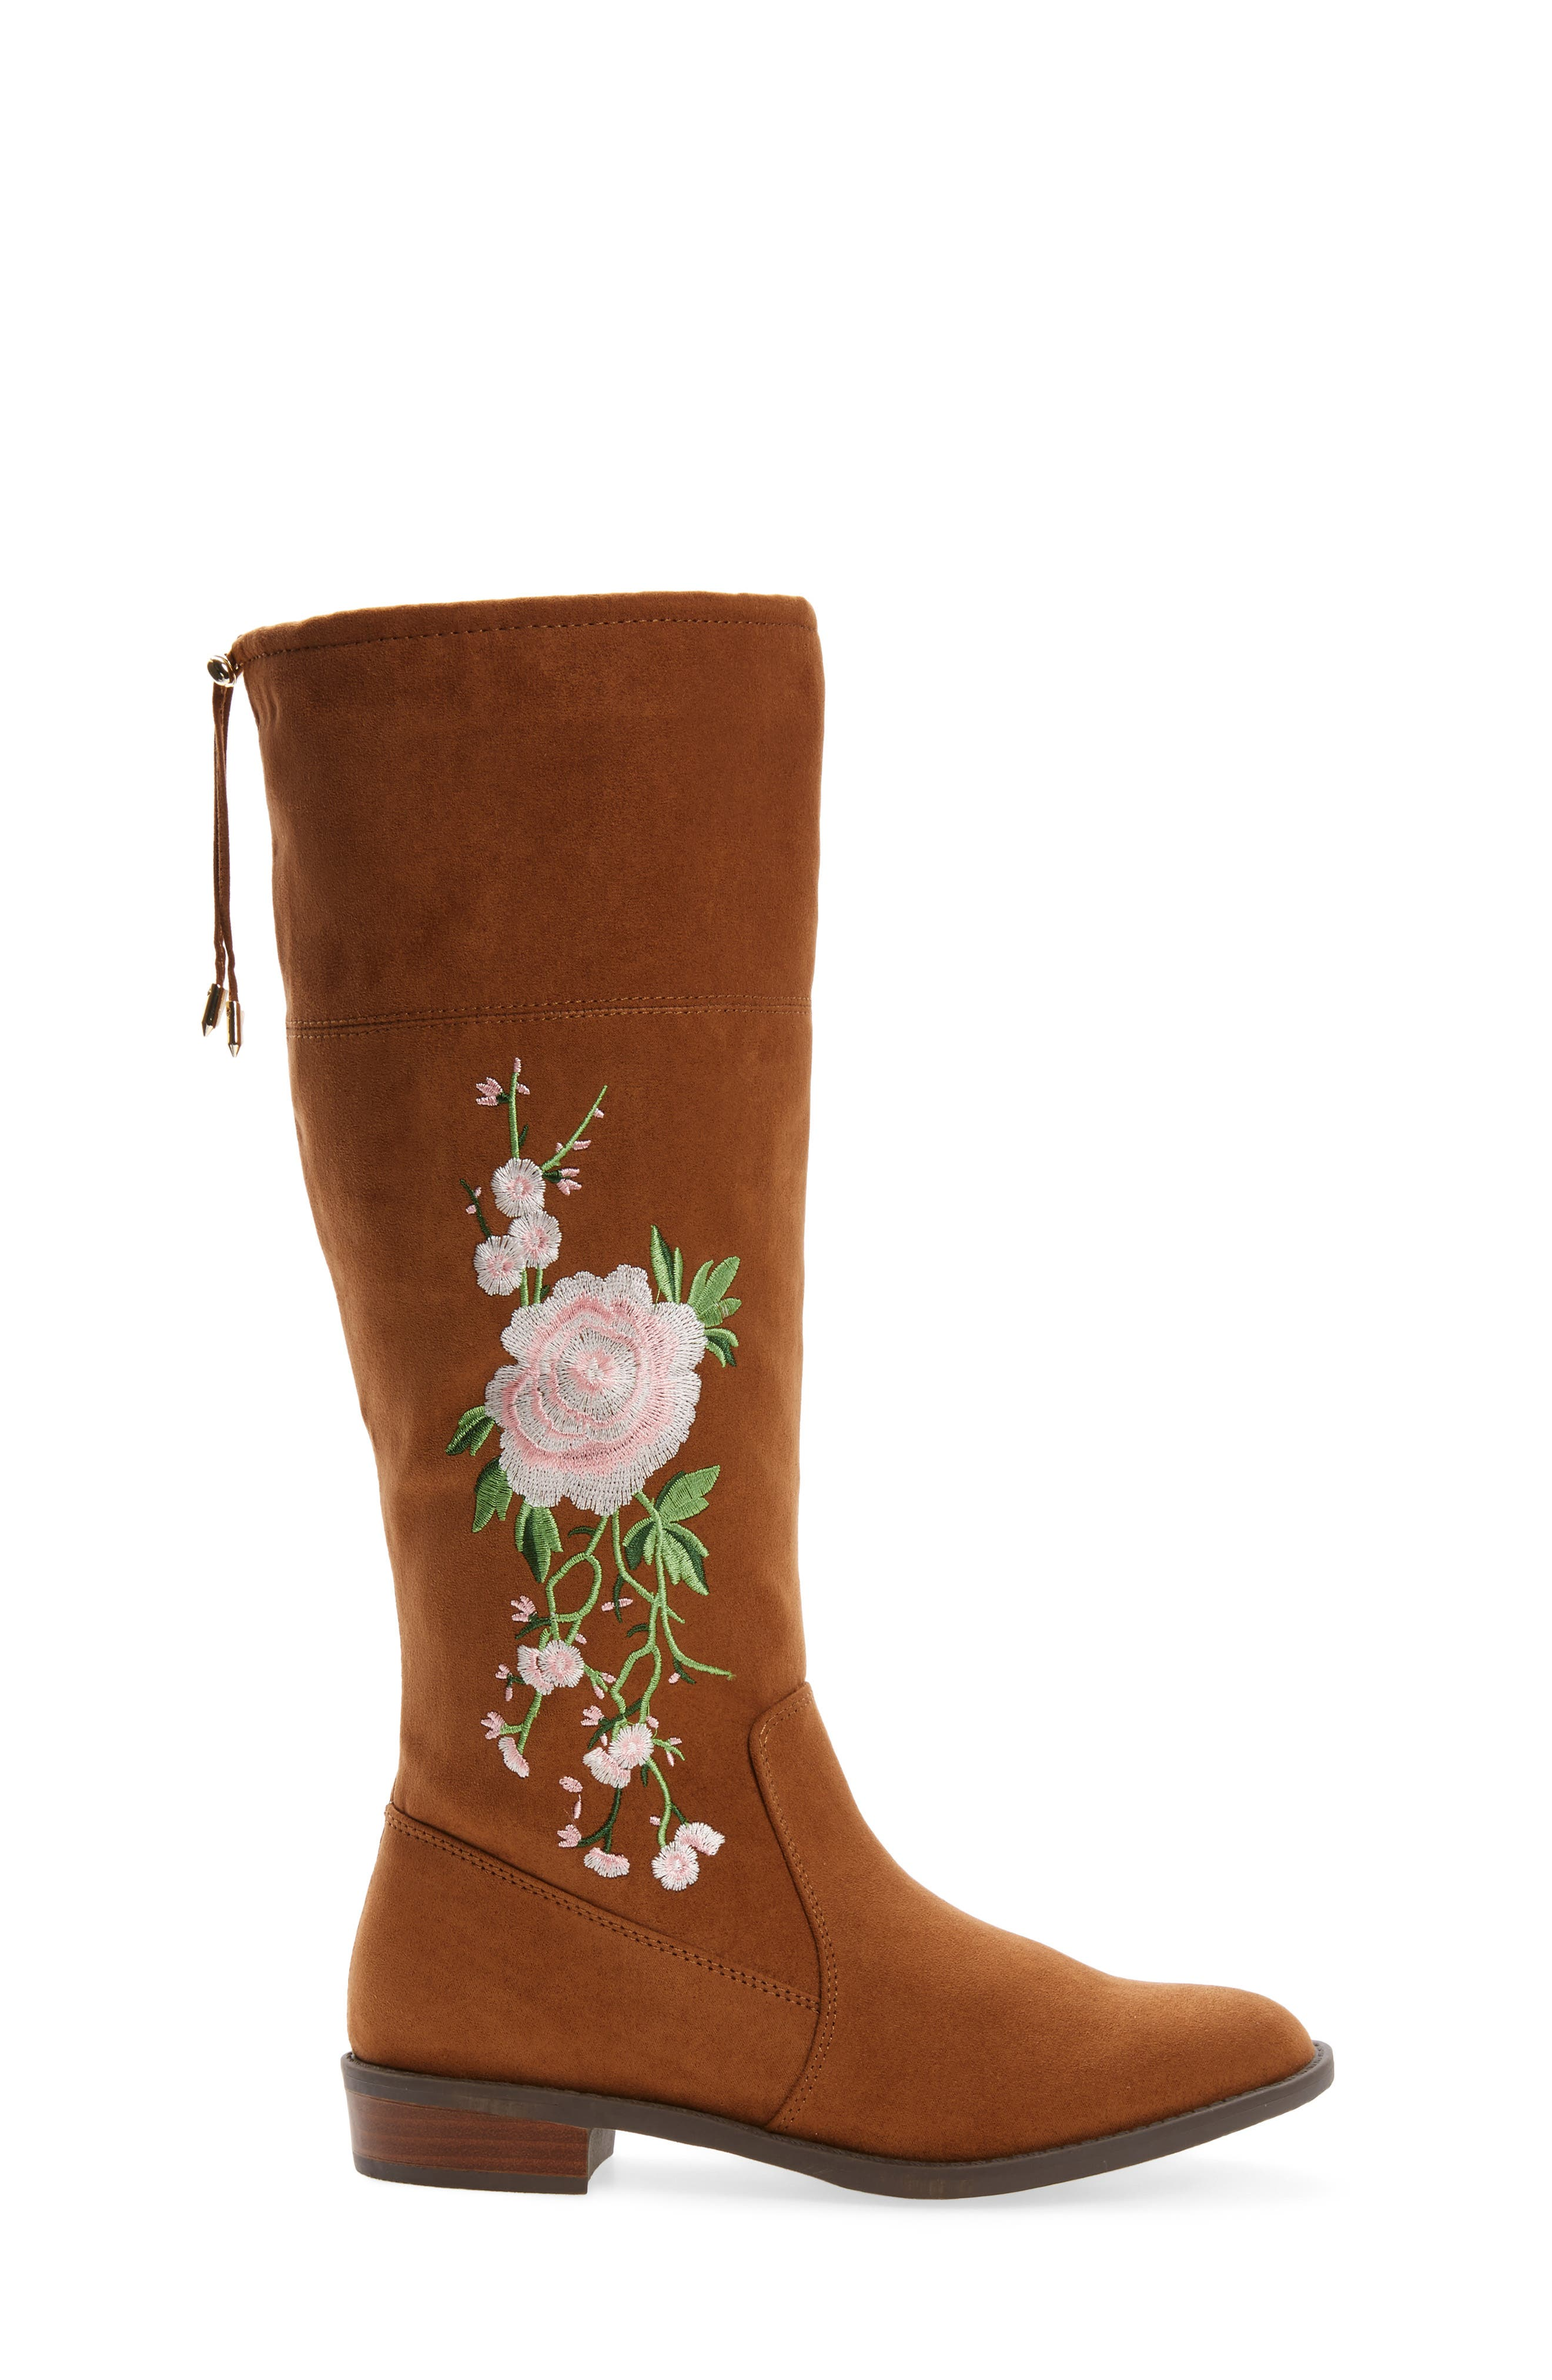 Pia Kent Embroidered Boot,                             Alternate thumbnail 3, color,                             200